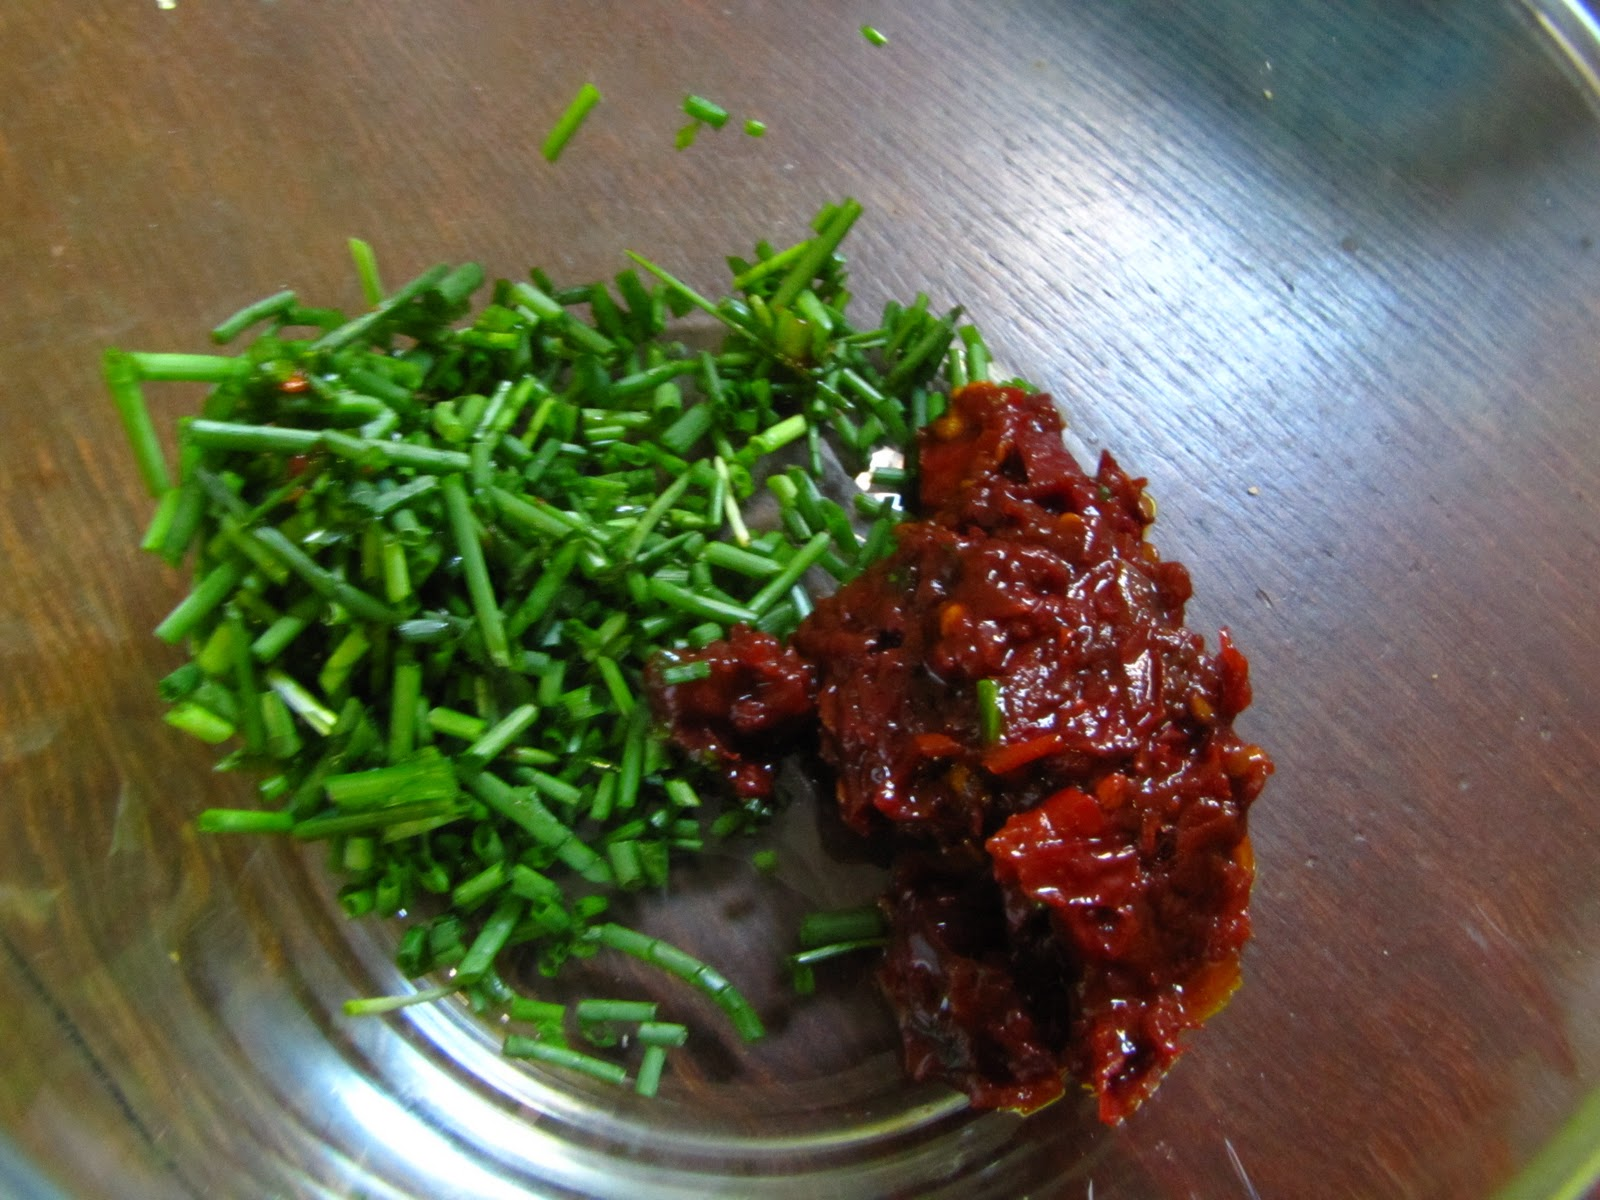 ... Food Diary: Spicy Hot Chicken Wings, with a Sweet and Smoky Glaze